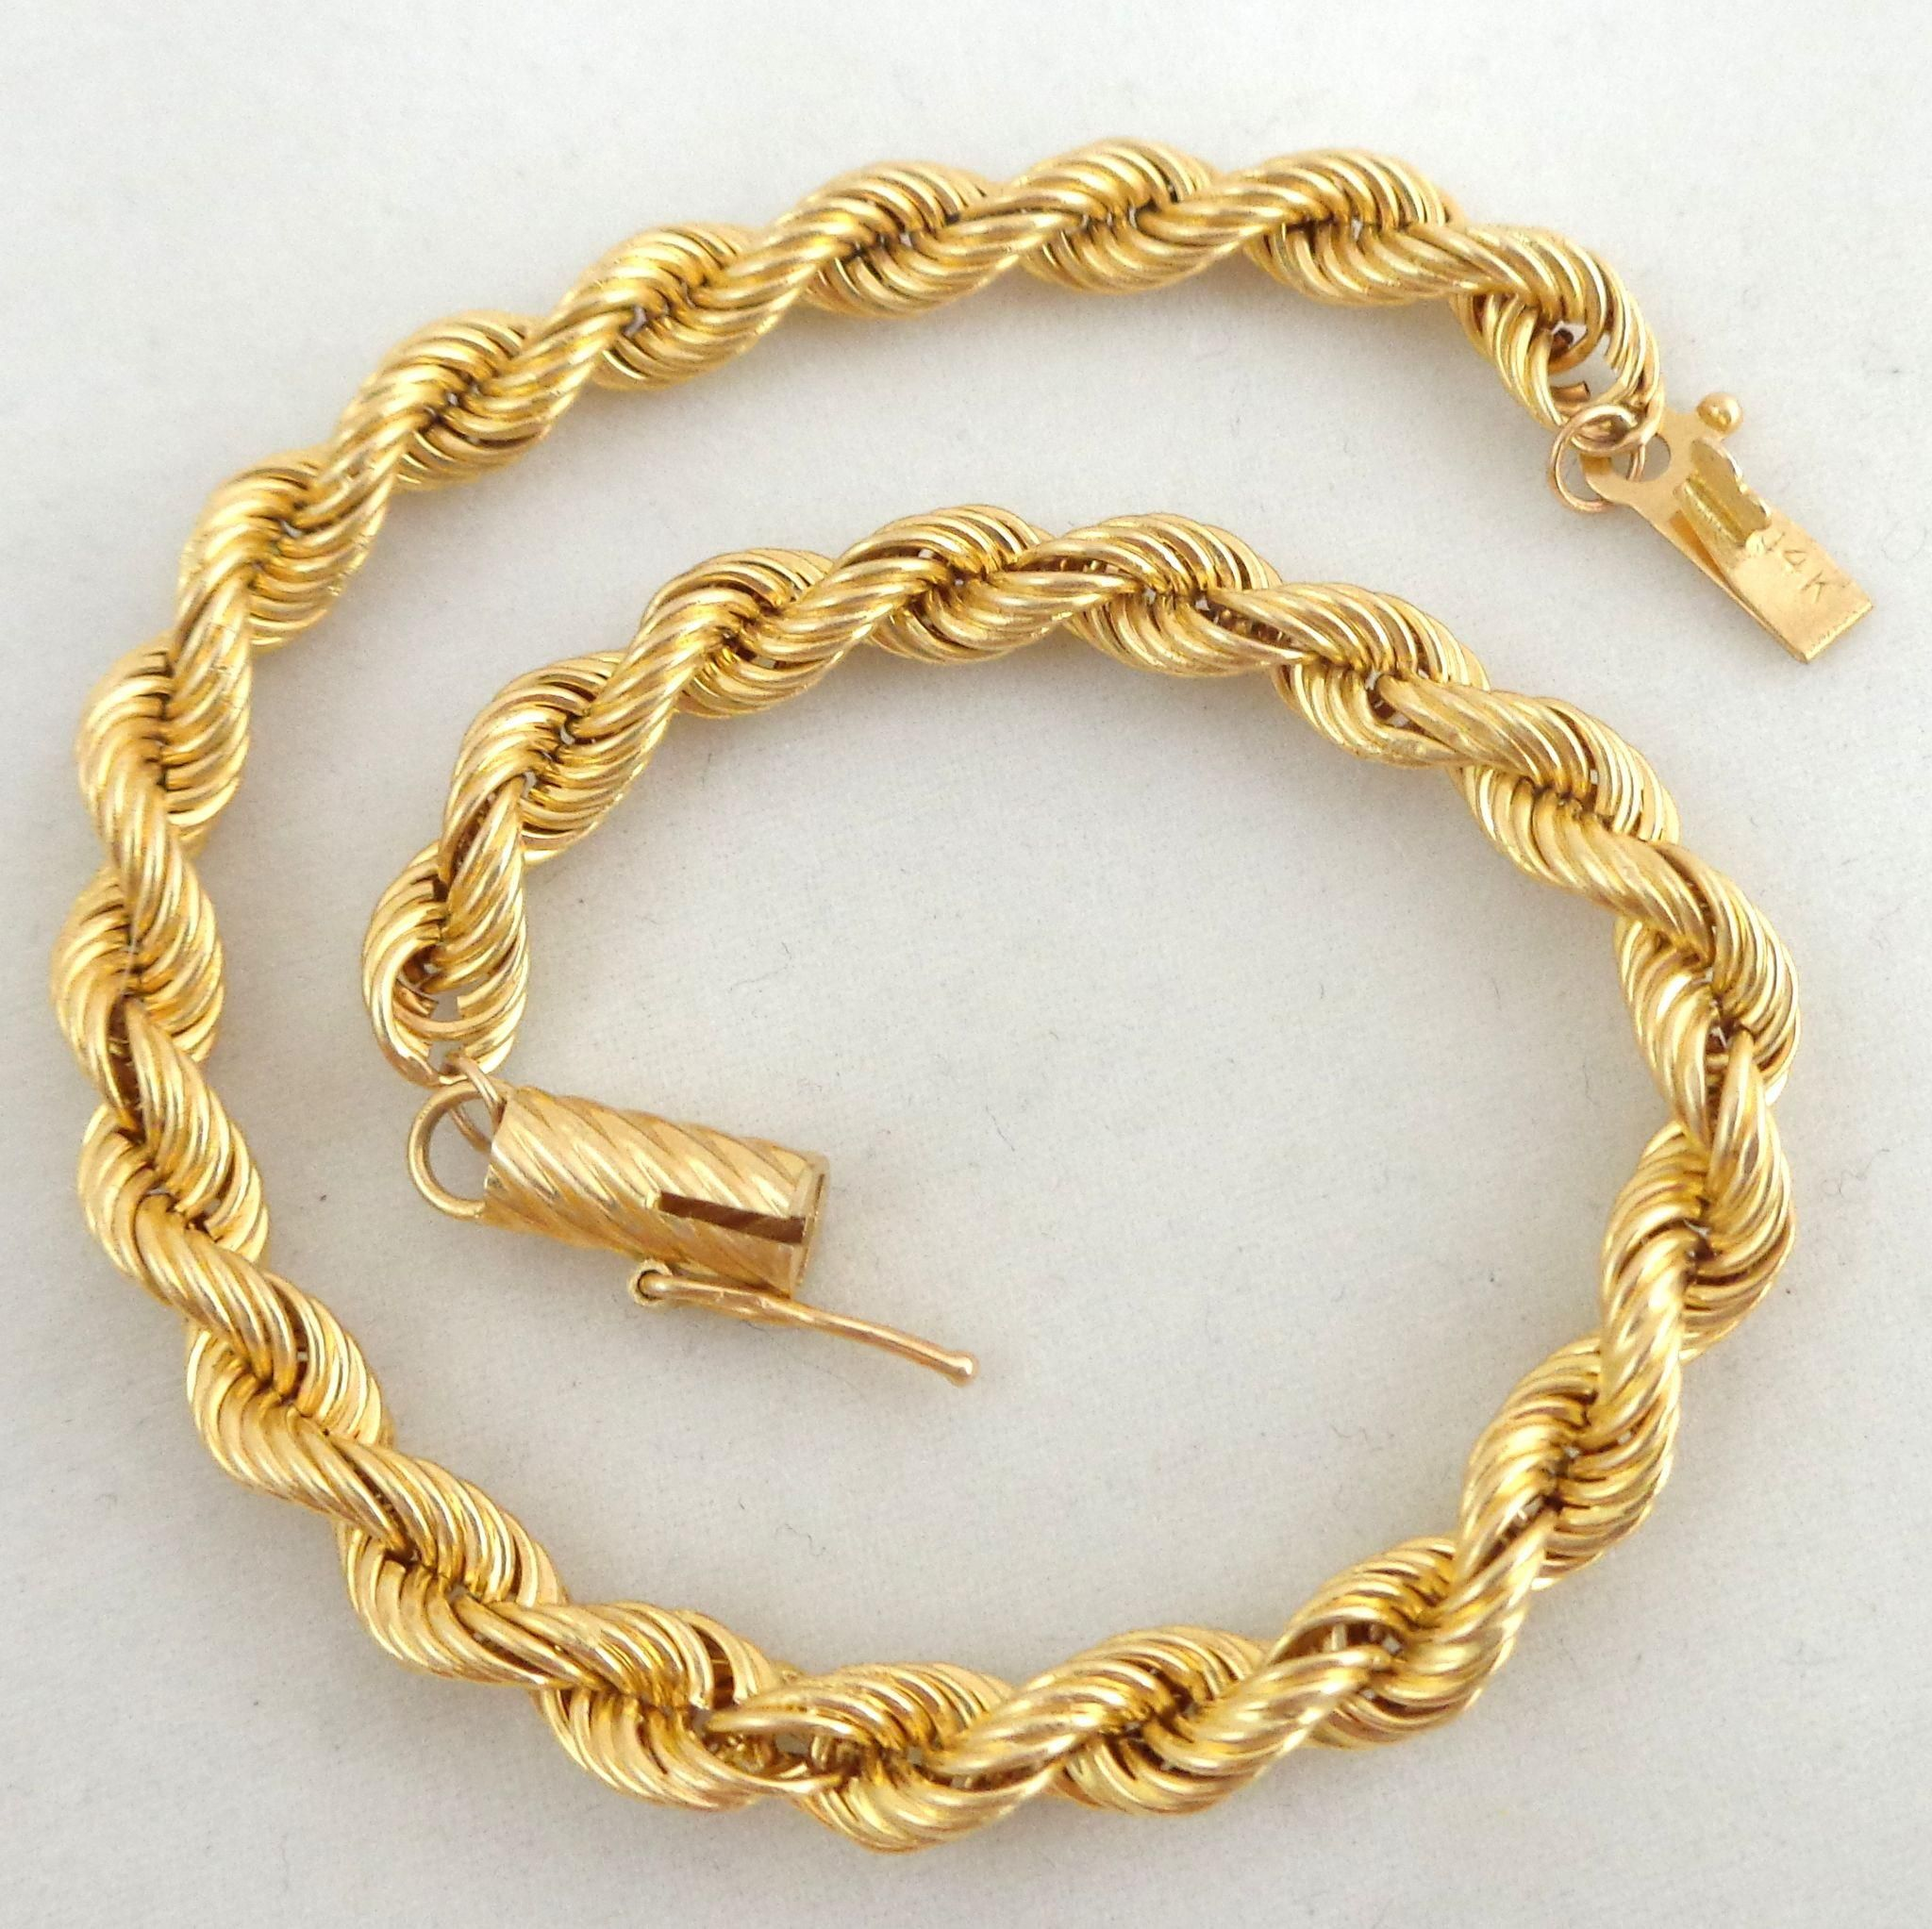 shop solid bracelet bangle yellow gold wide